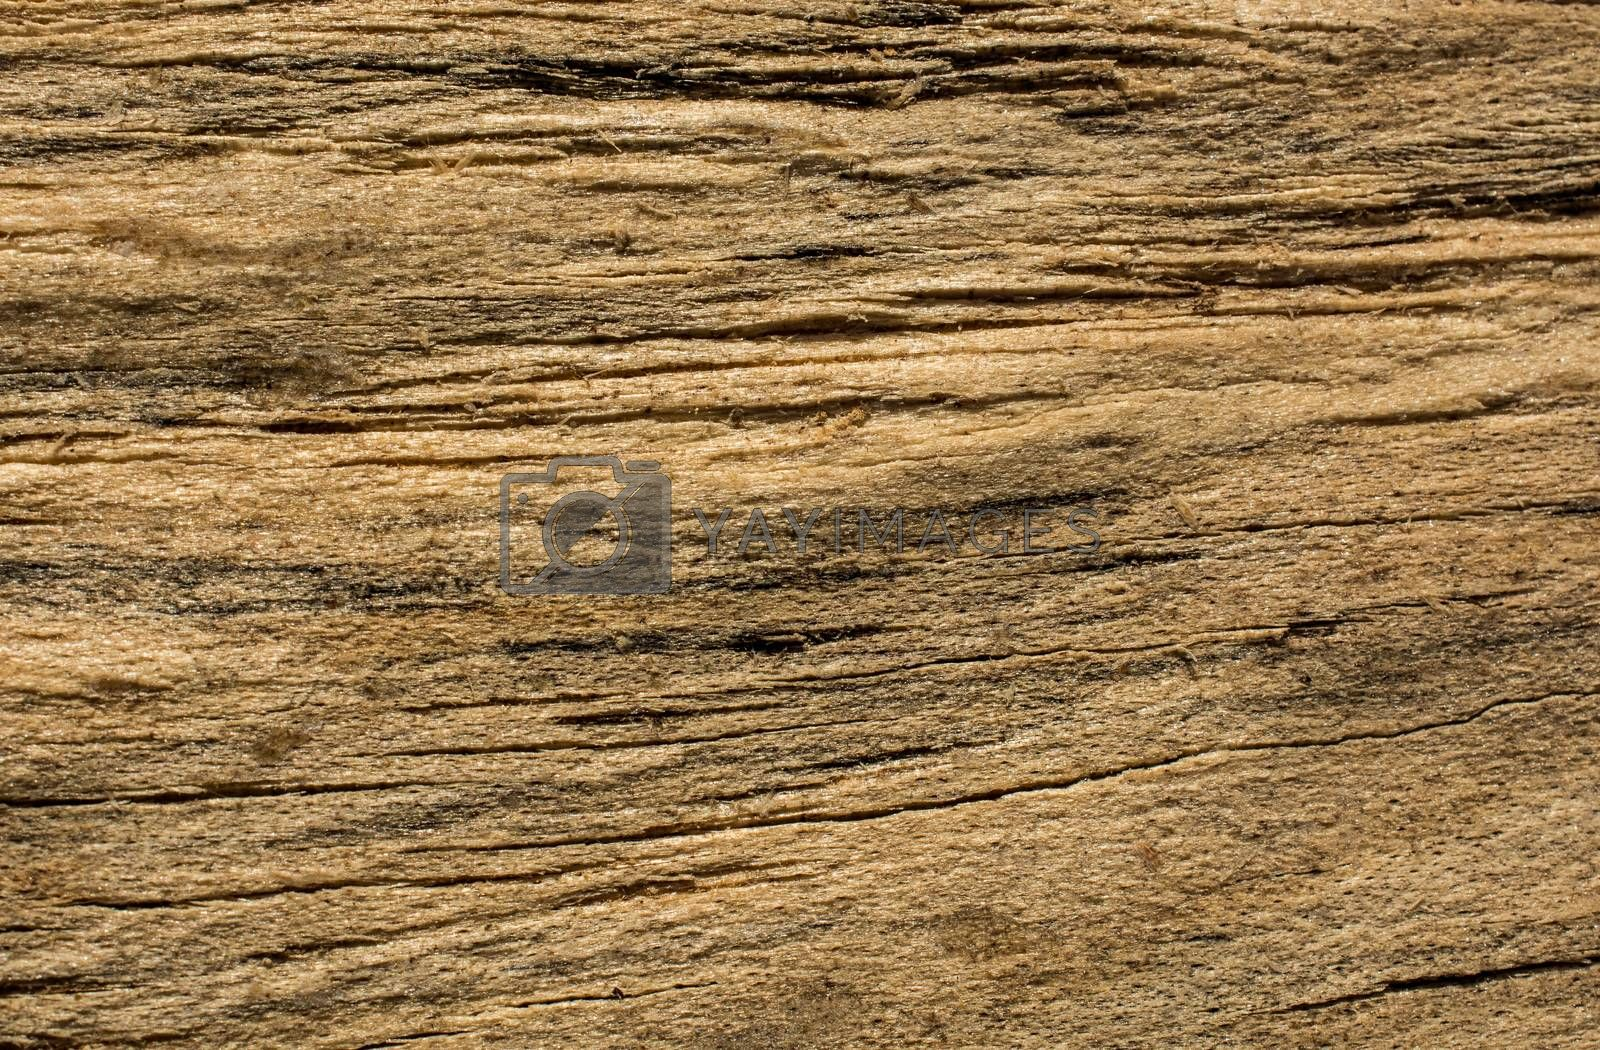 Wooden texture with natural patterns as a background